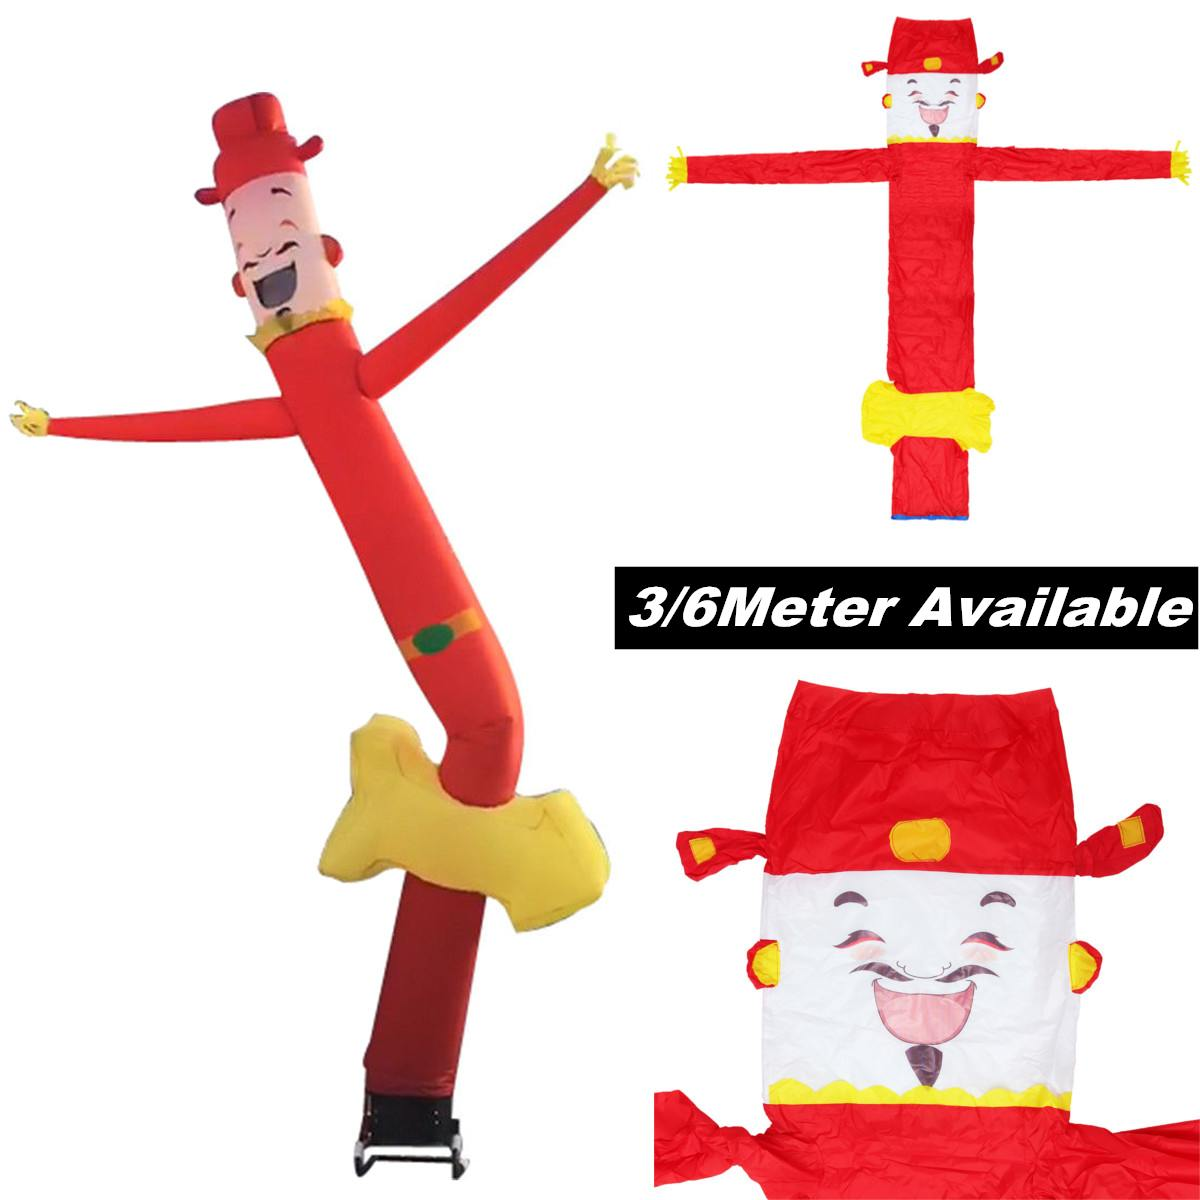 Air Wind Blower Puppet Inflatable Sky Flag Wavy Man Festivals Carnivals Model Toys 3/6 Meters Outdoor Fun Toys AdvertisingAir Wind Blower Puppet Inflatable Sky Flag Wavy Man Festivals Carnivals Model Toys 3/6 Meters Outdoor Fun Toys Advertising